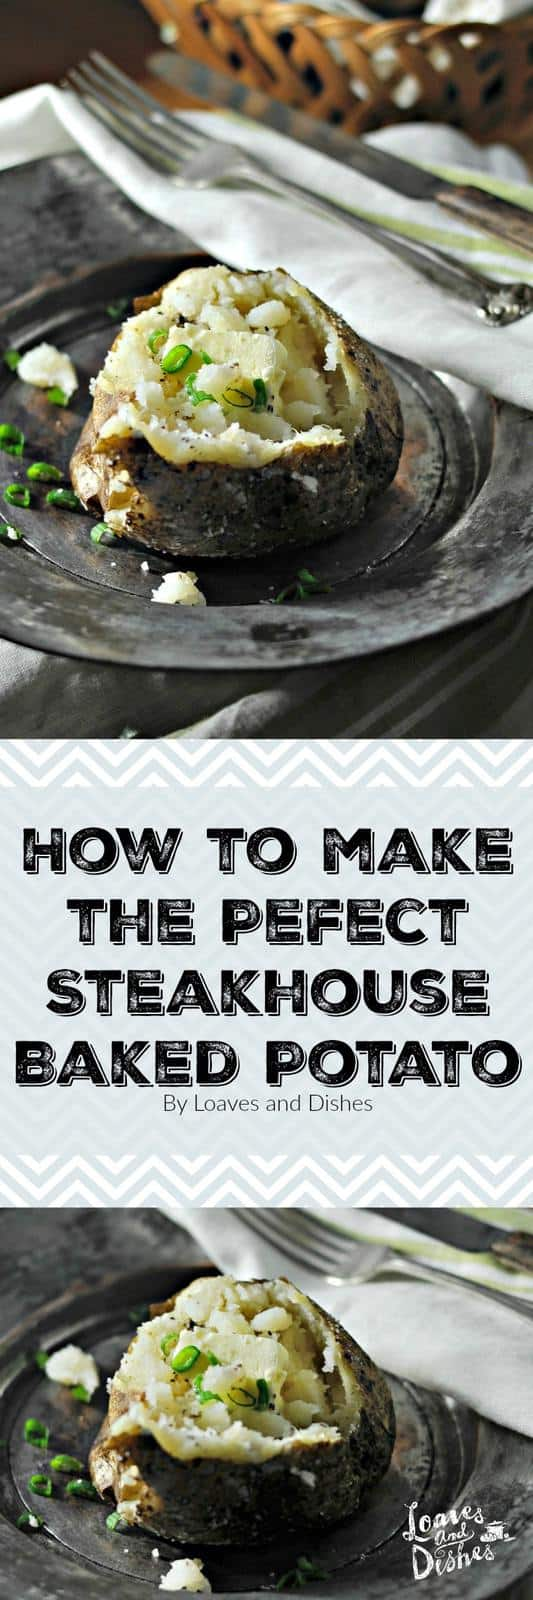 Did you ever wonder how the restaurant or steakhouse makes that perfect baked potato? Crispy Potato Skin with a Fluffy potato inside? I'll tell you how - just click right on through. This is EASY!